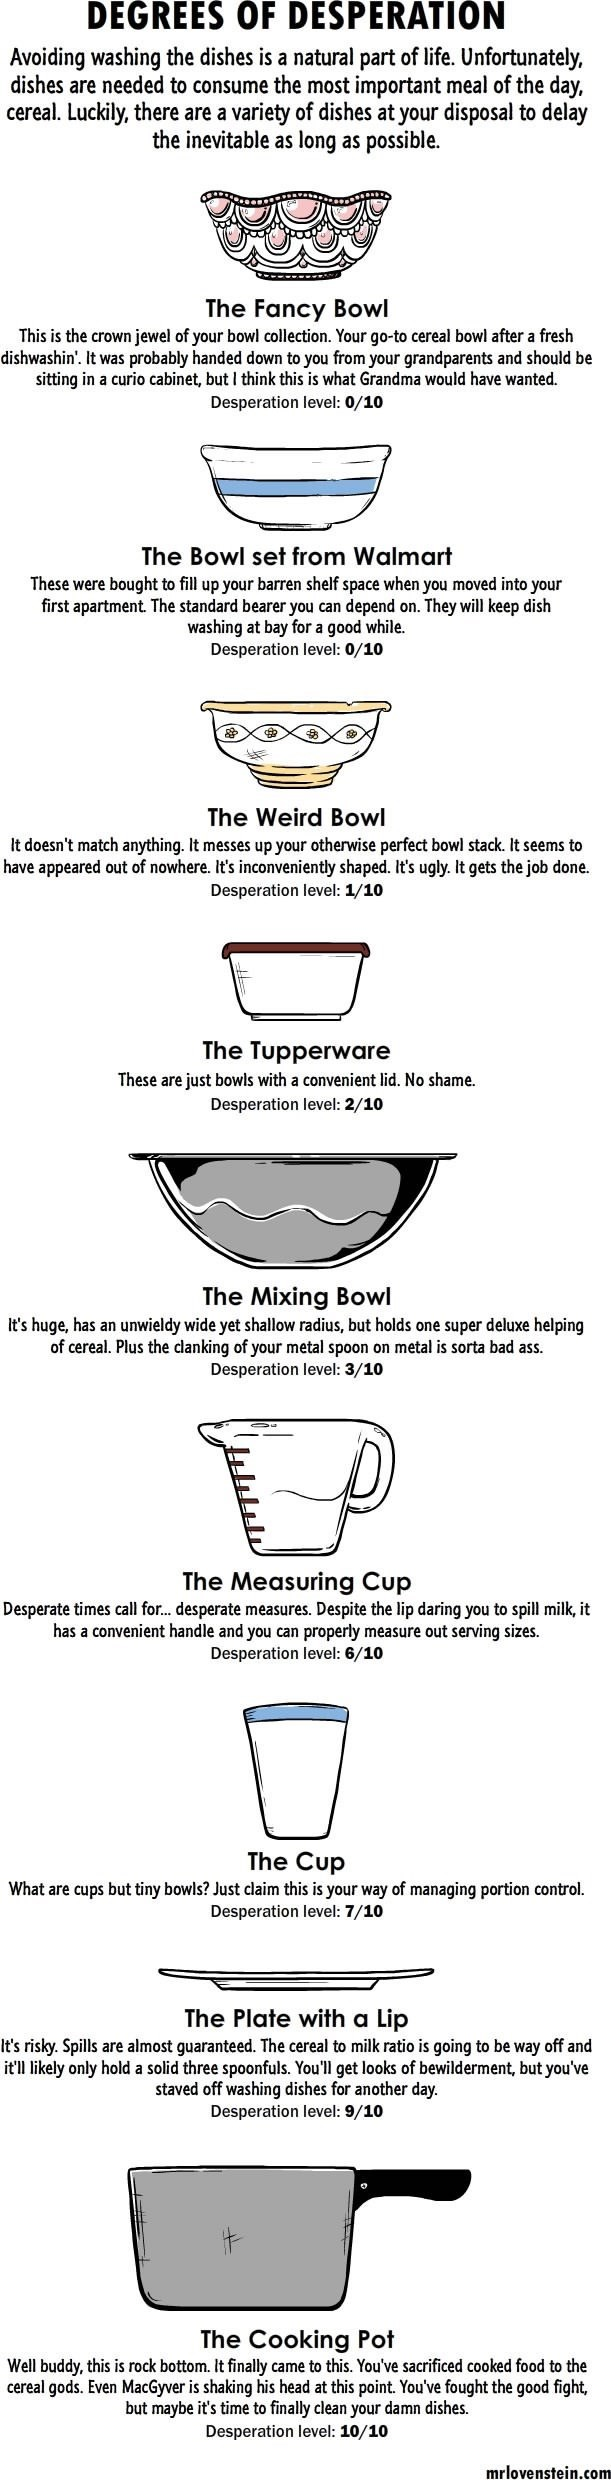 What Your Dishes Say About Your Desperation